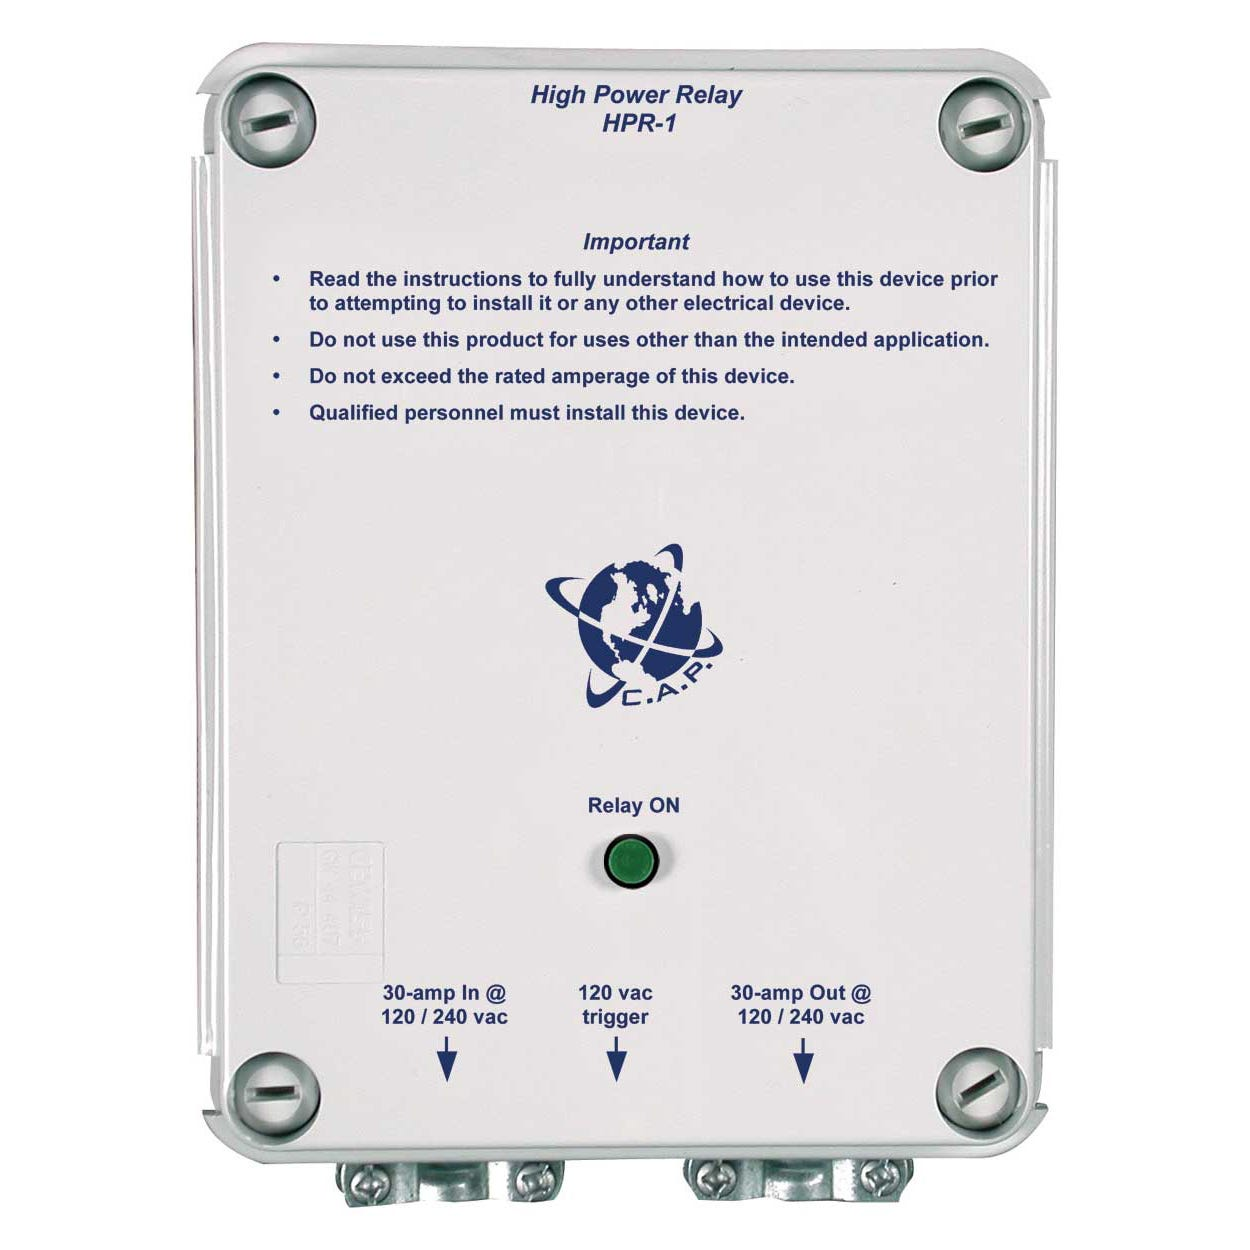 C.A.P. HPR-1 High Power Relay, 30 amps @ 120/240v *DISCONTINUED* This item has been discontinued, Please try our selection of Light Controllers for an alternative. The HPR-1 is a hardwired 30 amp capacity, 230 volt version of the UPM-1. The HPR-1 is perfect for controlling higher loads such as large air conditioners or multiple HID ballasts. You supply 240 volt power to the input side of the HPR-1. The air conditioner or ballasts to be controlled are then hard-wired into the output side of the relay. The 16 foot trigger cable coming from the HPR-1 is then connected to your control device such as a time clock, thermostat or environmental controller. When the device applies power to the trigger cable, the relay in the HPR-1 applies power to the connected equipment. The HPR-1 is rated at 30 amps @ 240 volts. 3 years no hassle warranty.